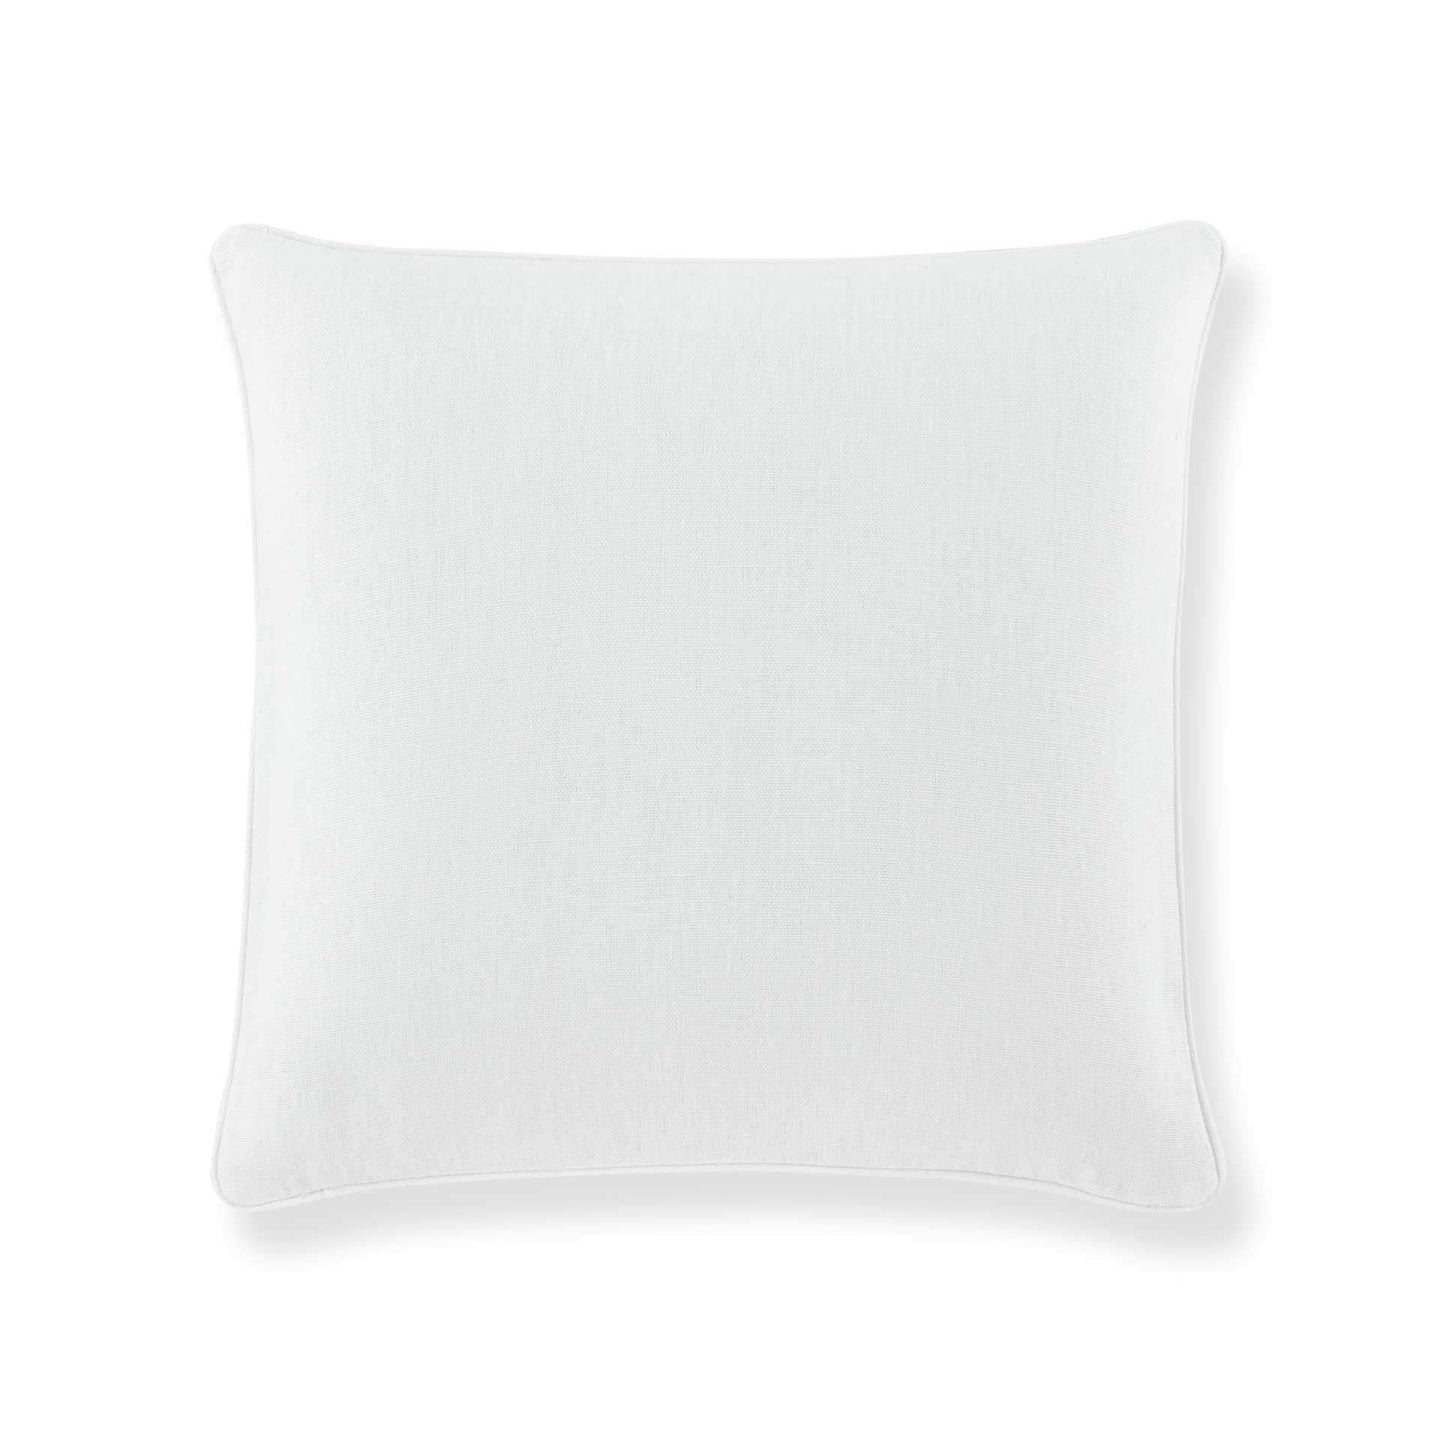 Rio Linen Decorative Pillows